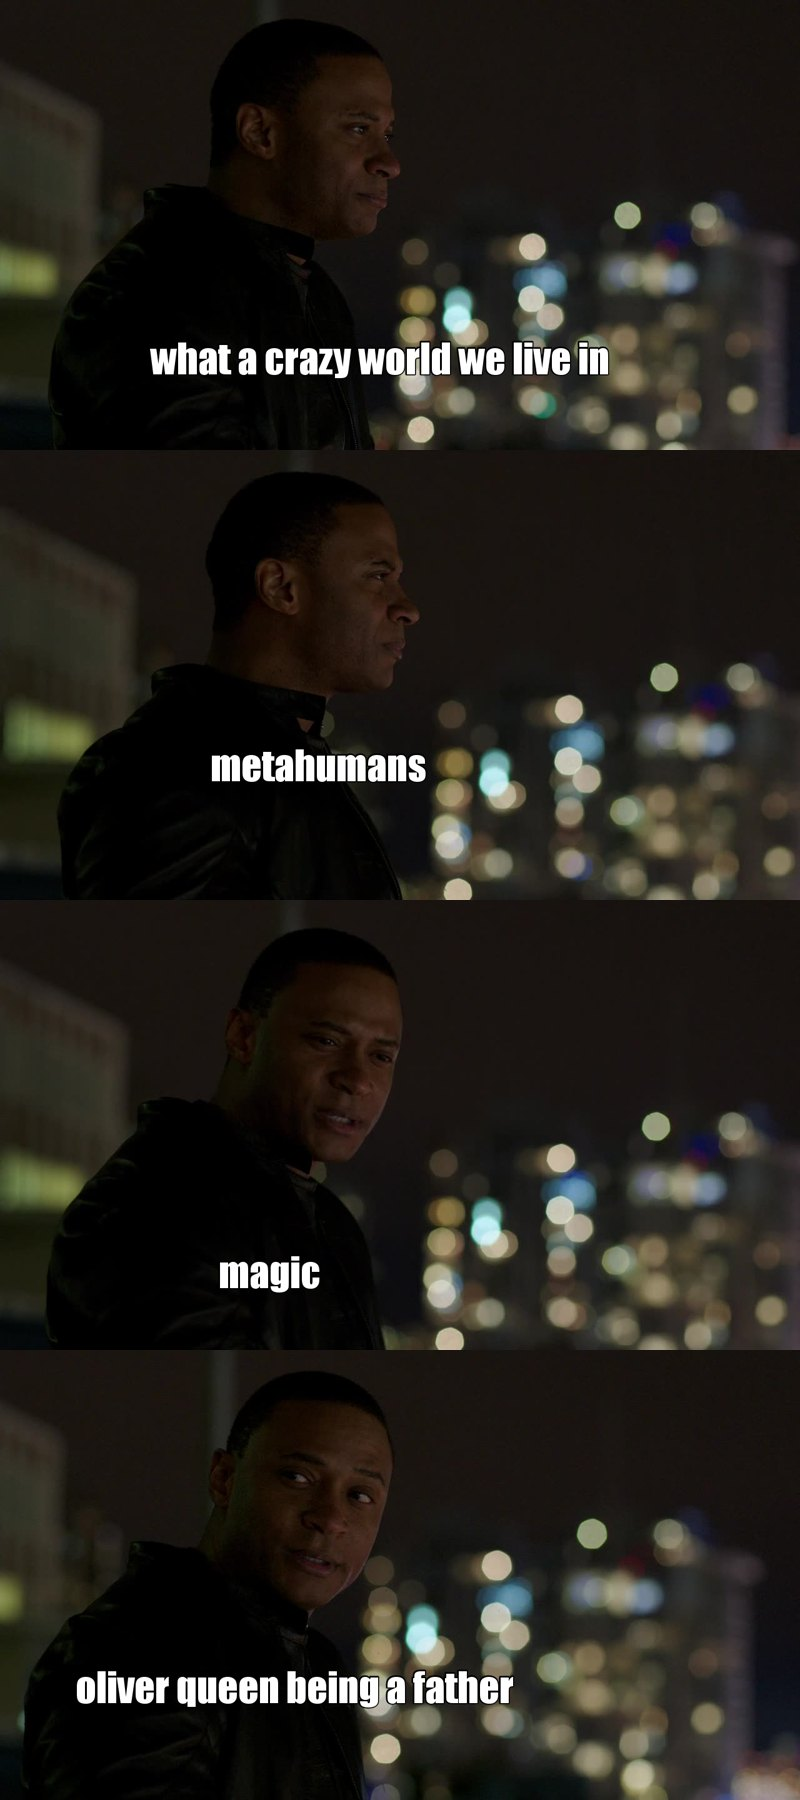 Thank you John Diggle